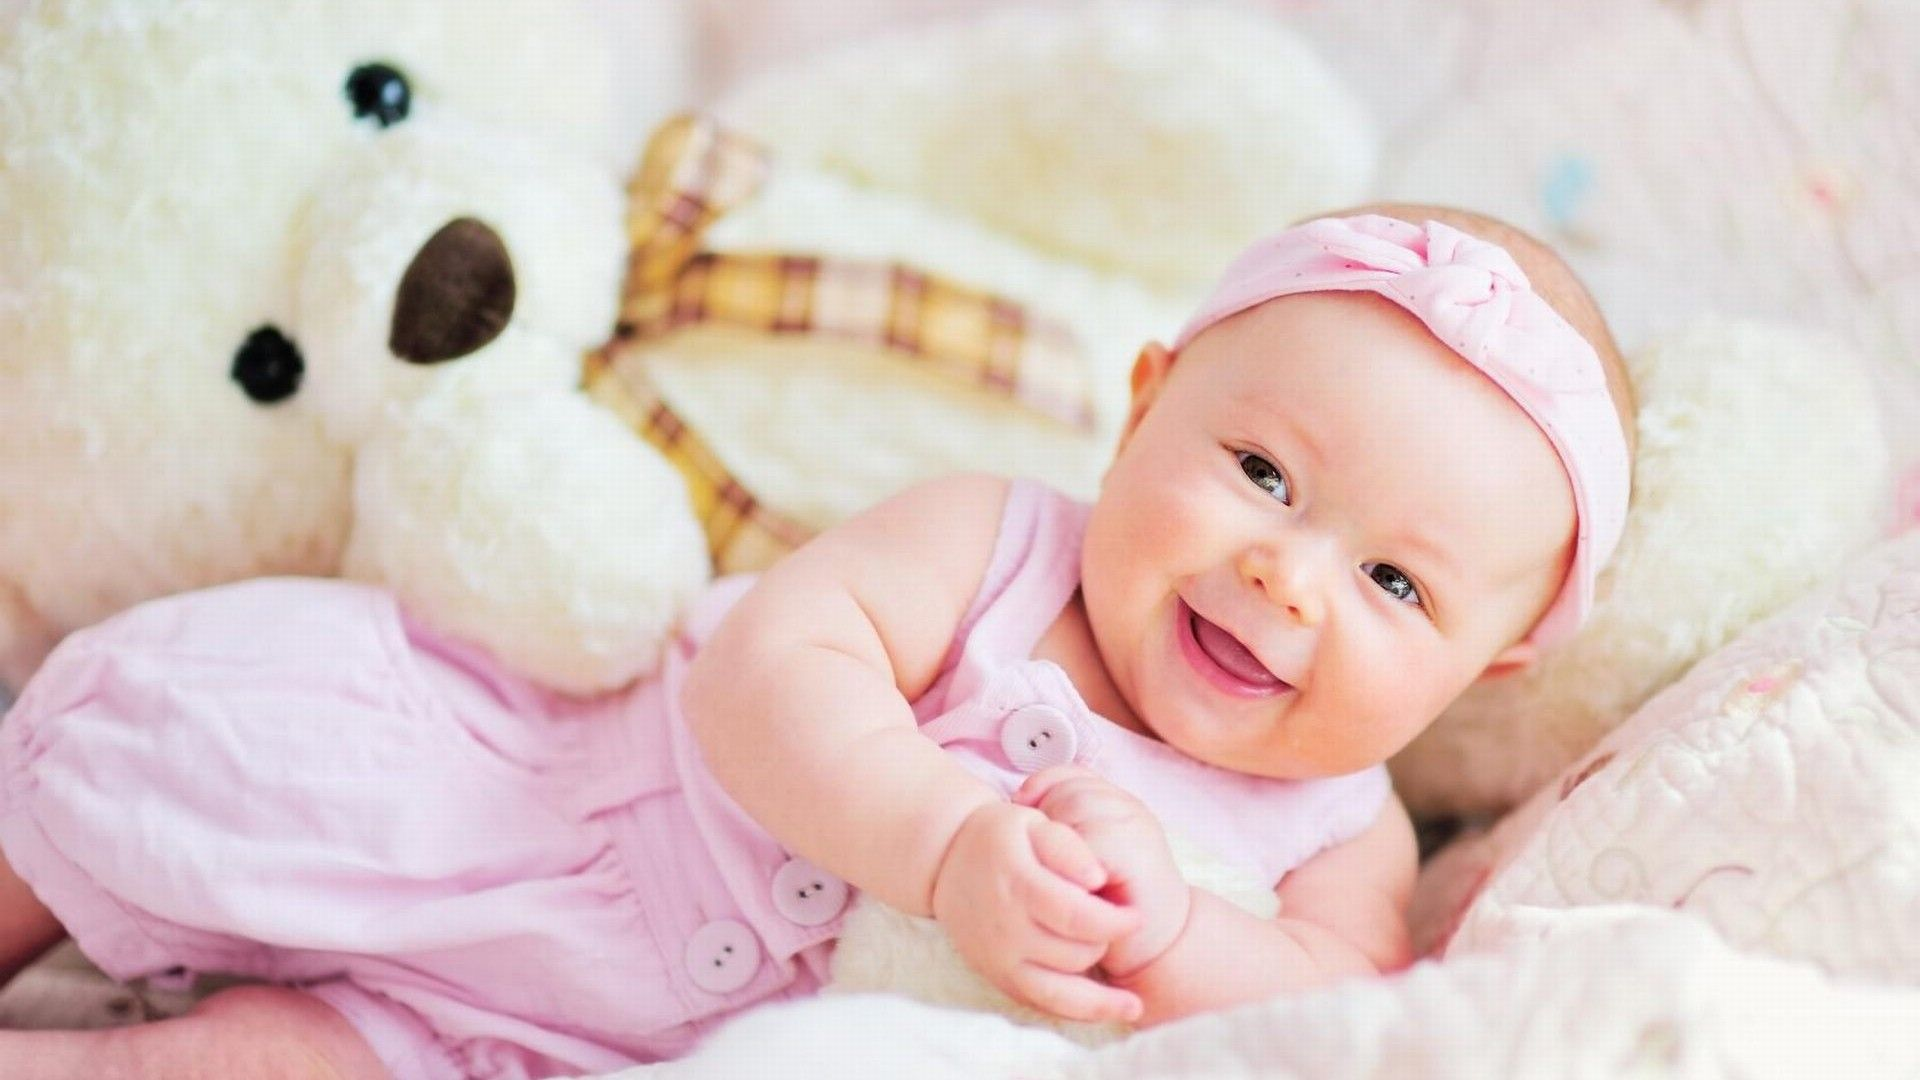 most beautiful baby girl wallpapers | hd pictures images u2013 hd